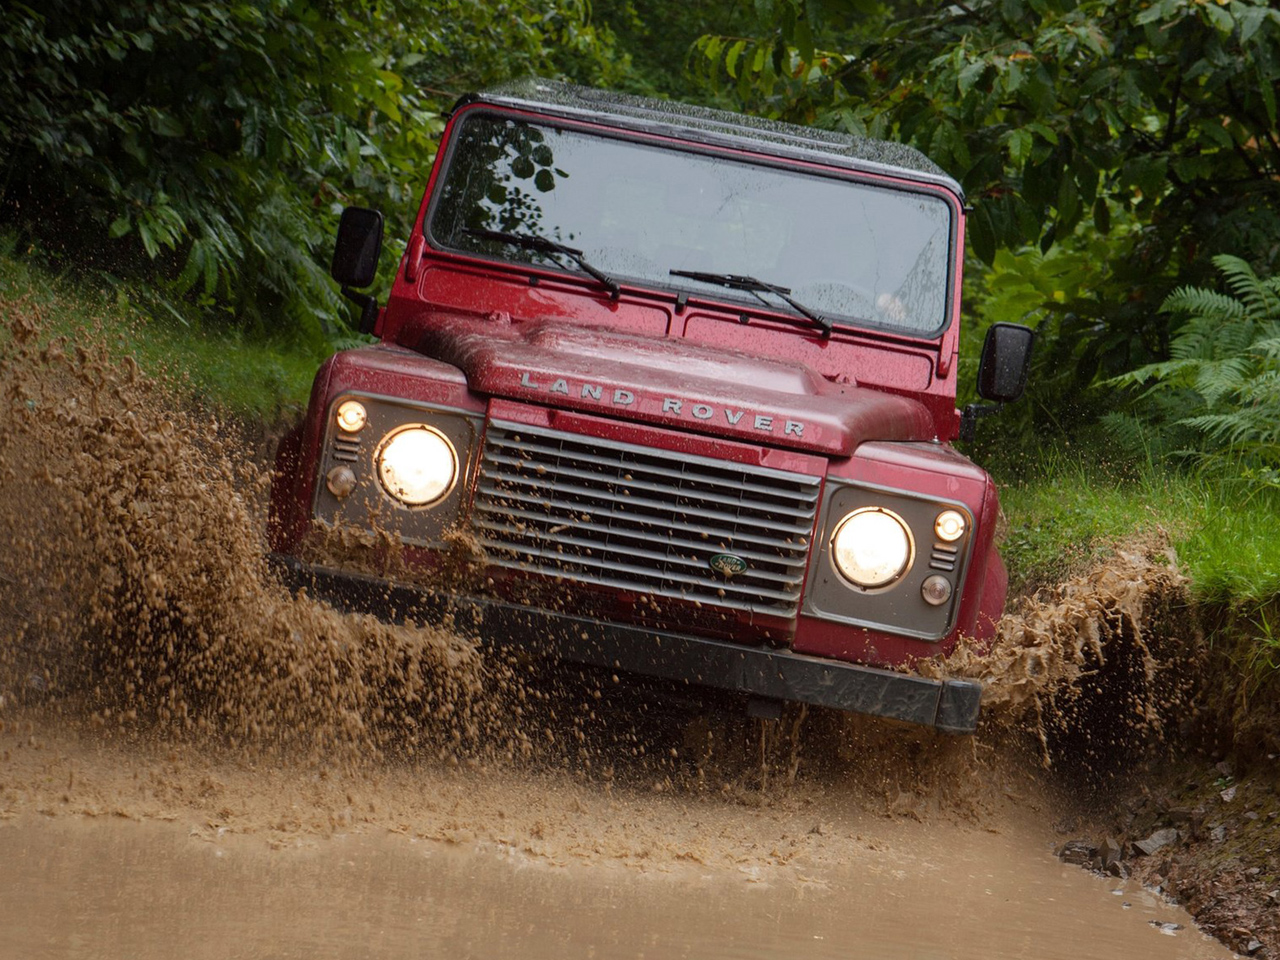 Frontal Land Rover Defender 110